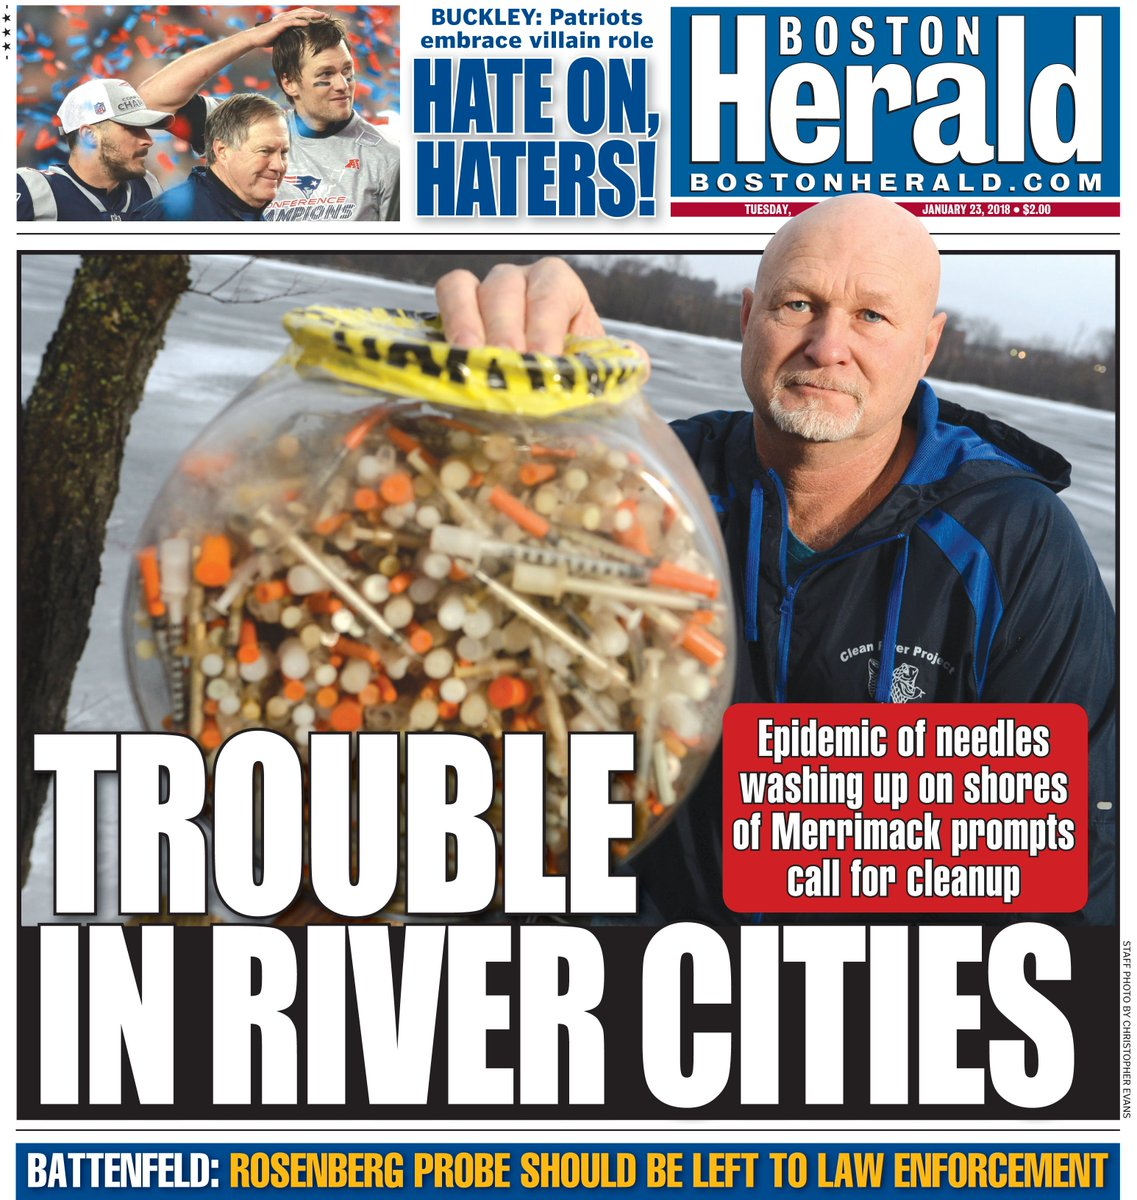 RT @bostonherald: Today's page one https://t.co/NlkkggfPsT